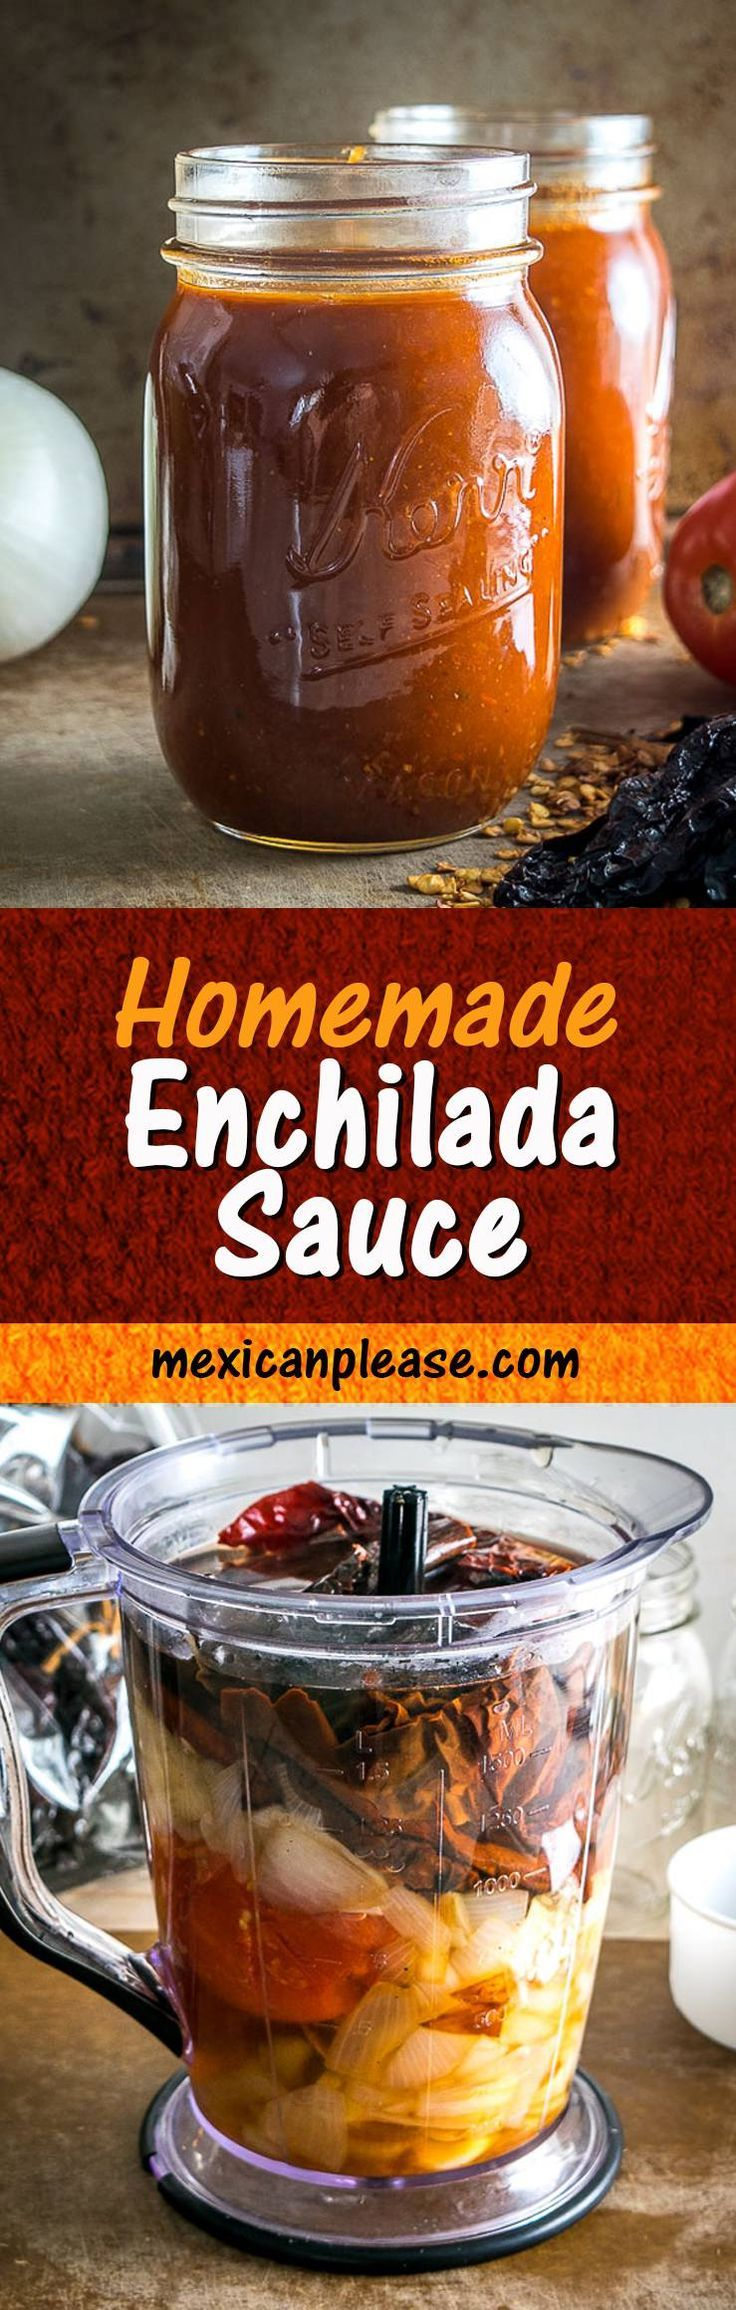 65515 best best food blogger recipes images on pinterest kitchens this is the enchilada sauce that i always come back to i used all anchos for this batch but there is some leeway on the chili peppers you could add in forumfinder Gallery